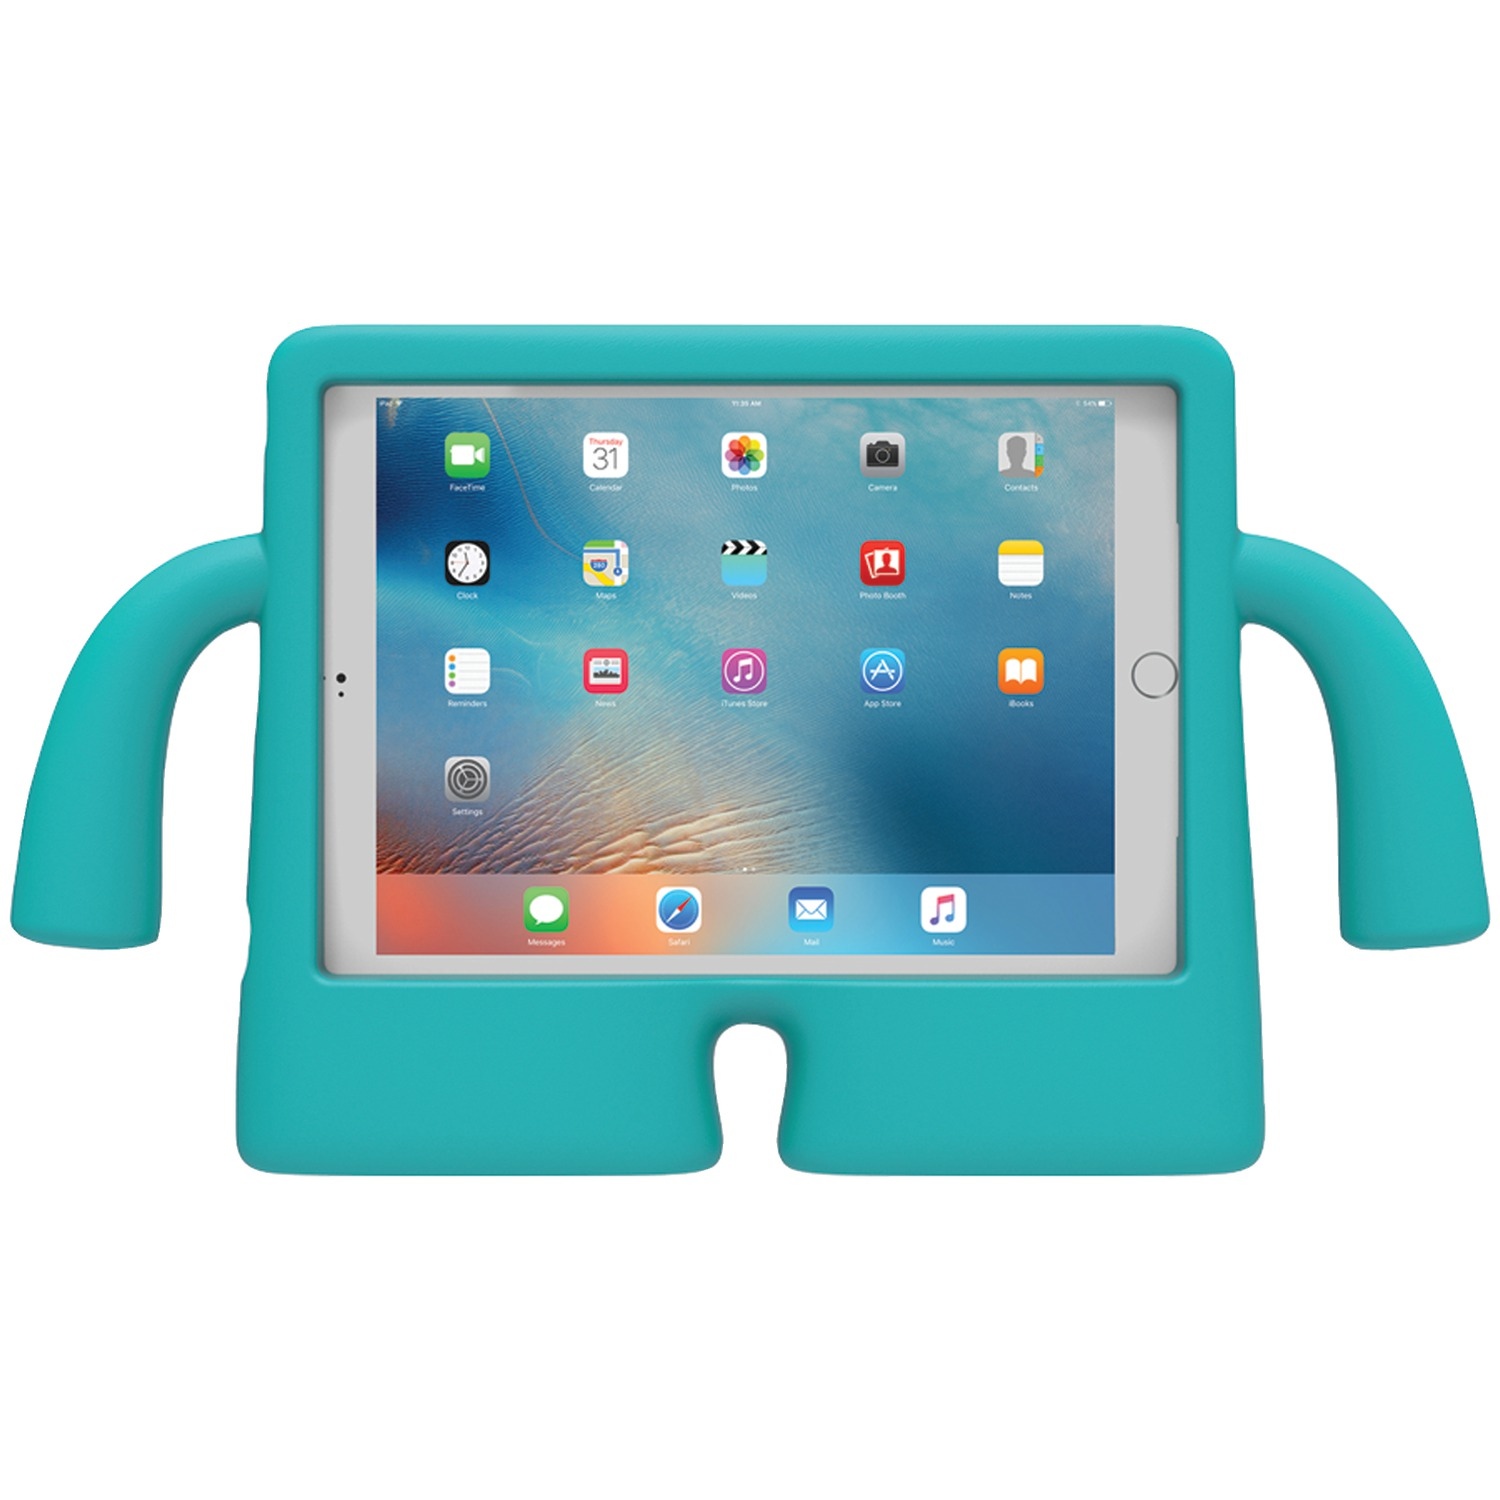 "Speck 77641-2479 iGuy Case for iPad Pro 9.7"" (Caribbean Blue)"